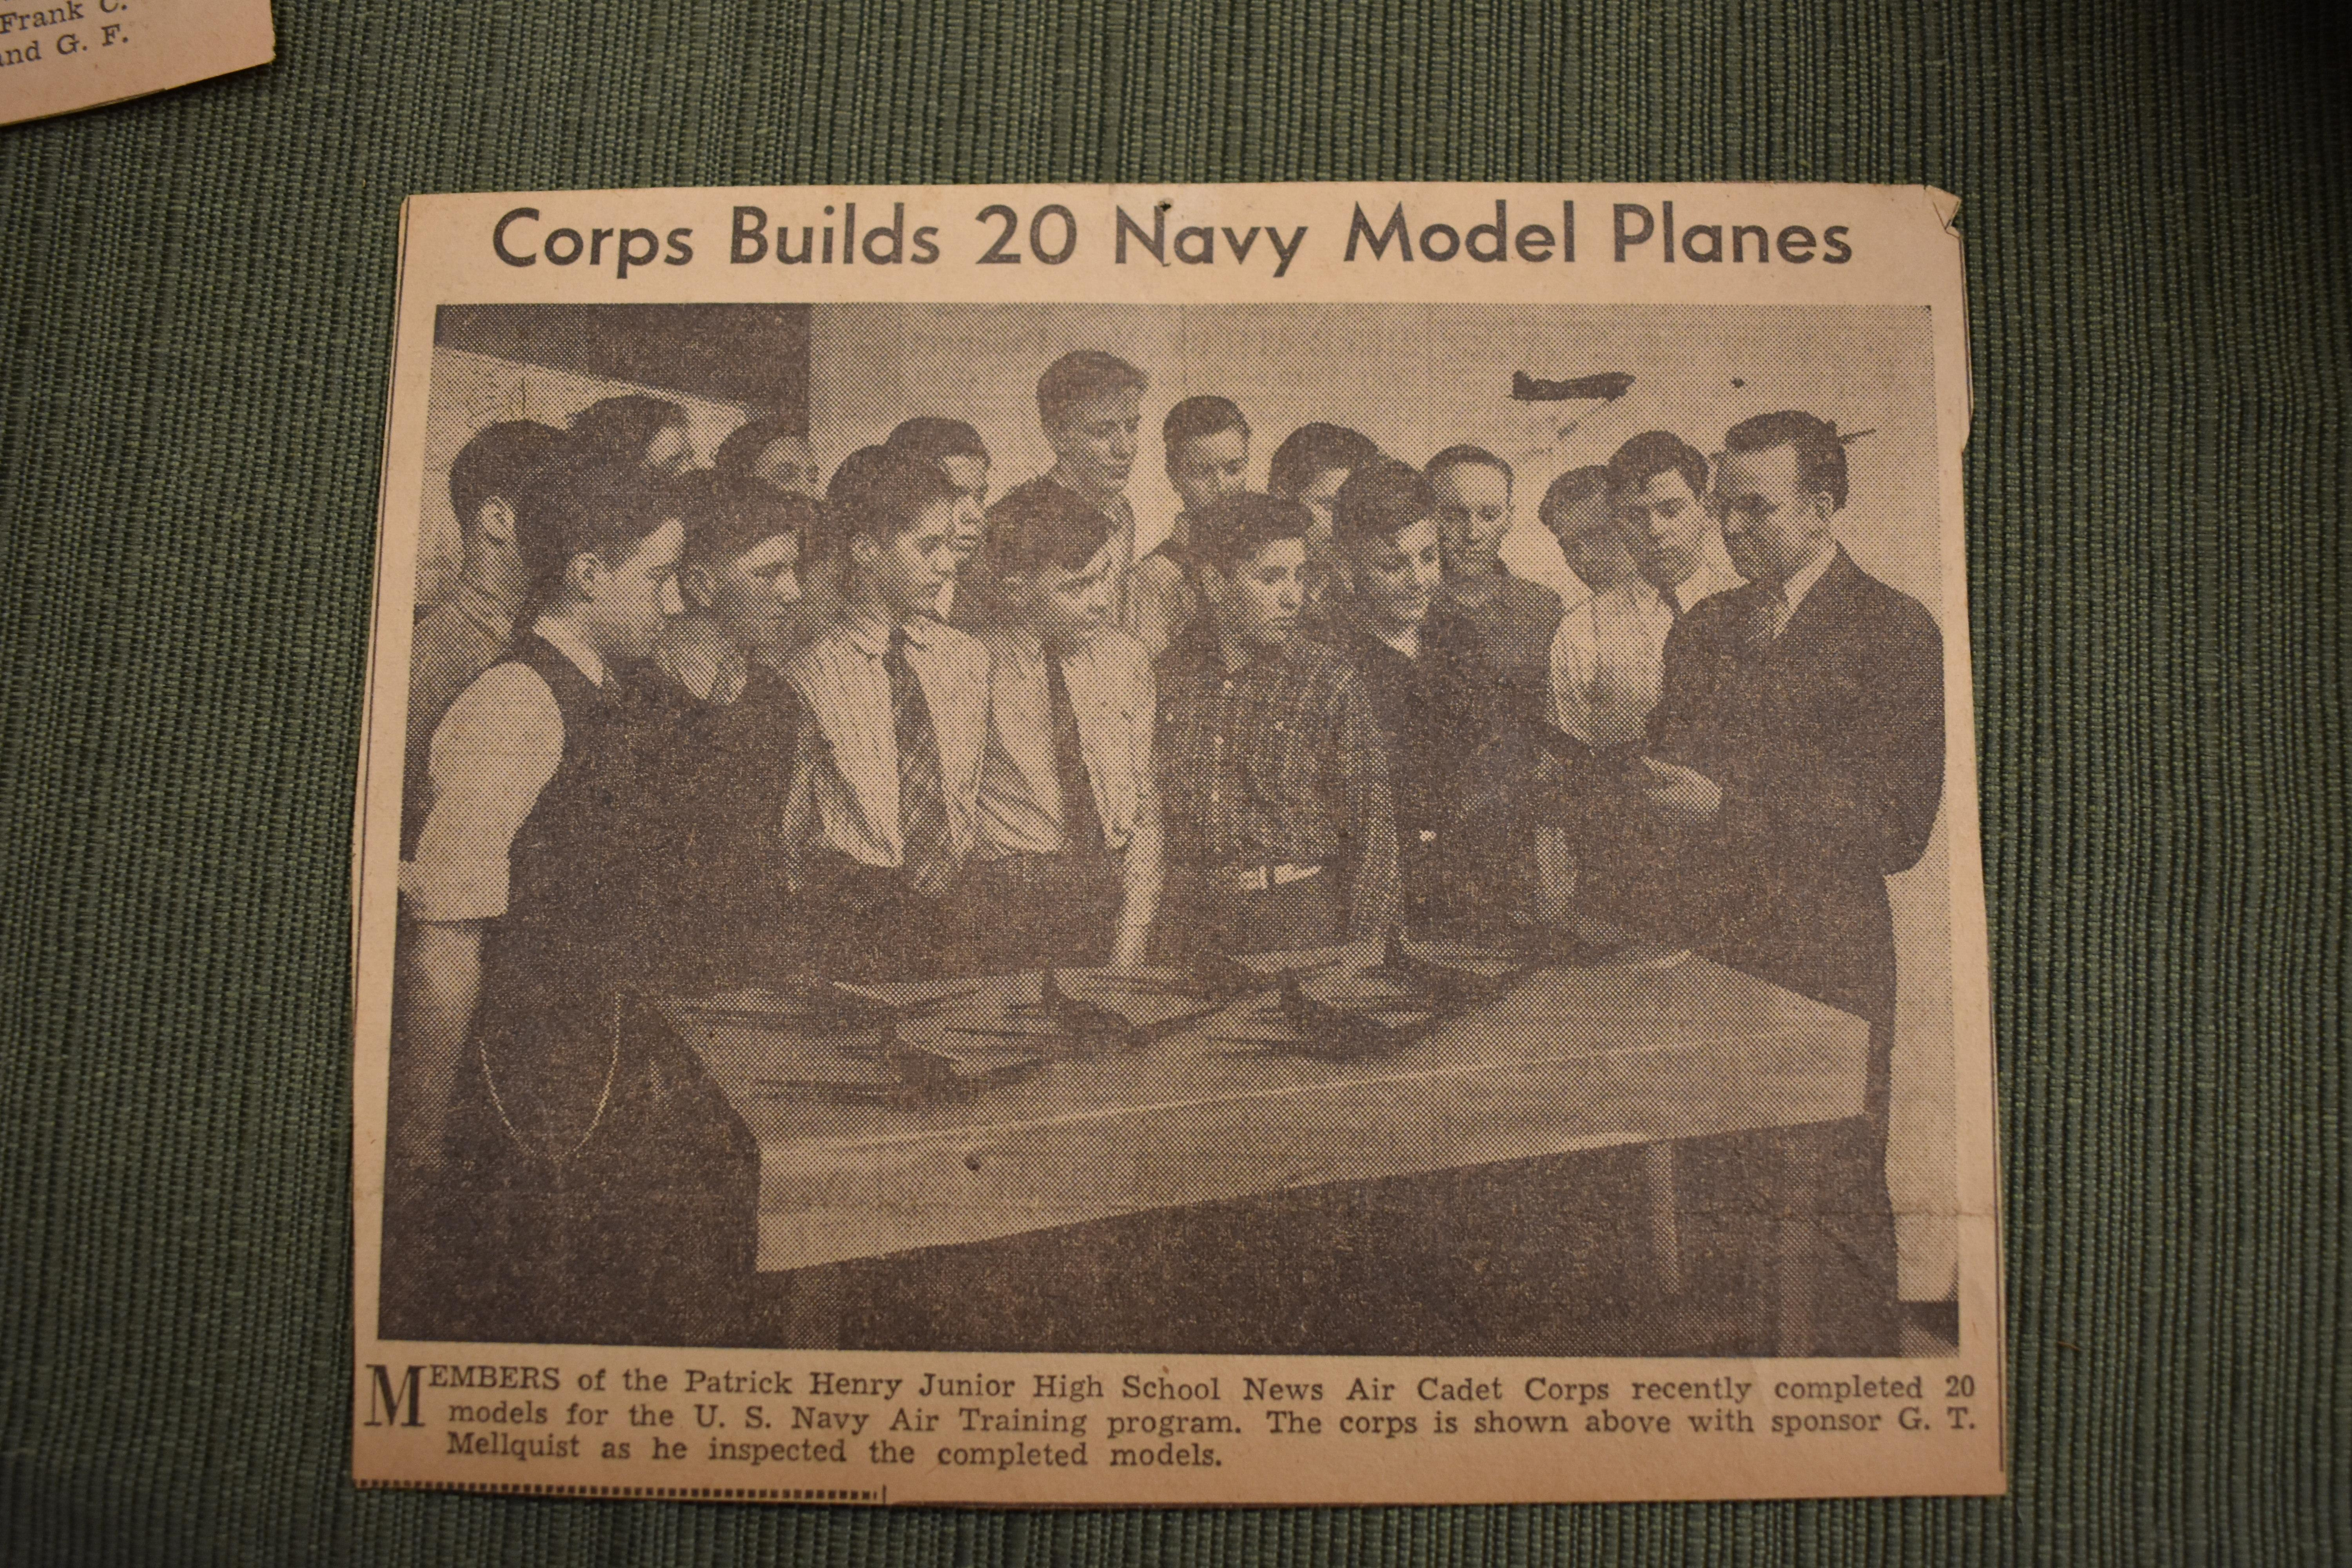 Cleveland, Ohio newspaper showing scale model airplanes constructed by Gustav Mellquist's Air Cadet Corps students. These were used by the military to train pilots to identify Allied, Axis and enemy aircraft. Photo by Maureen Flanagan Battistella